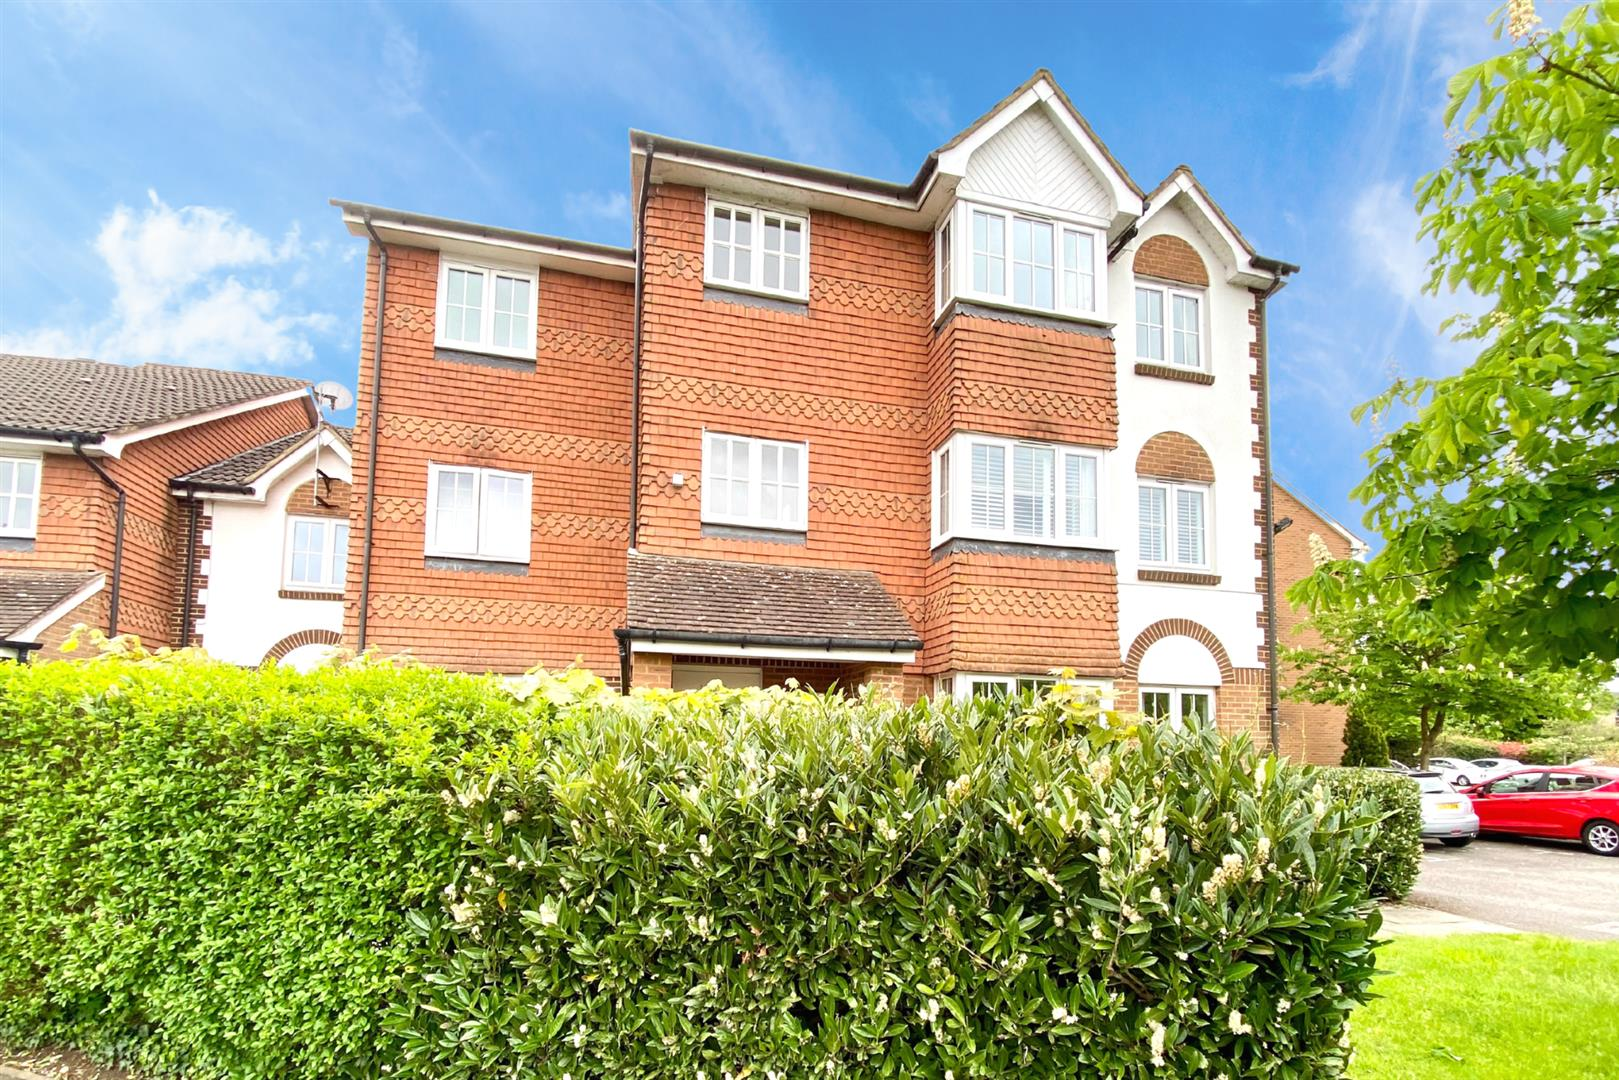 2 bed flat for sale, RG30